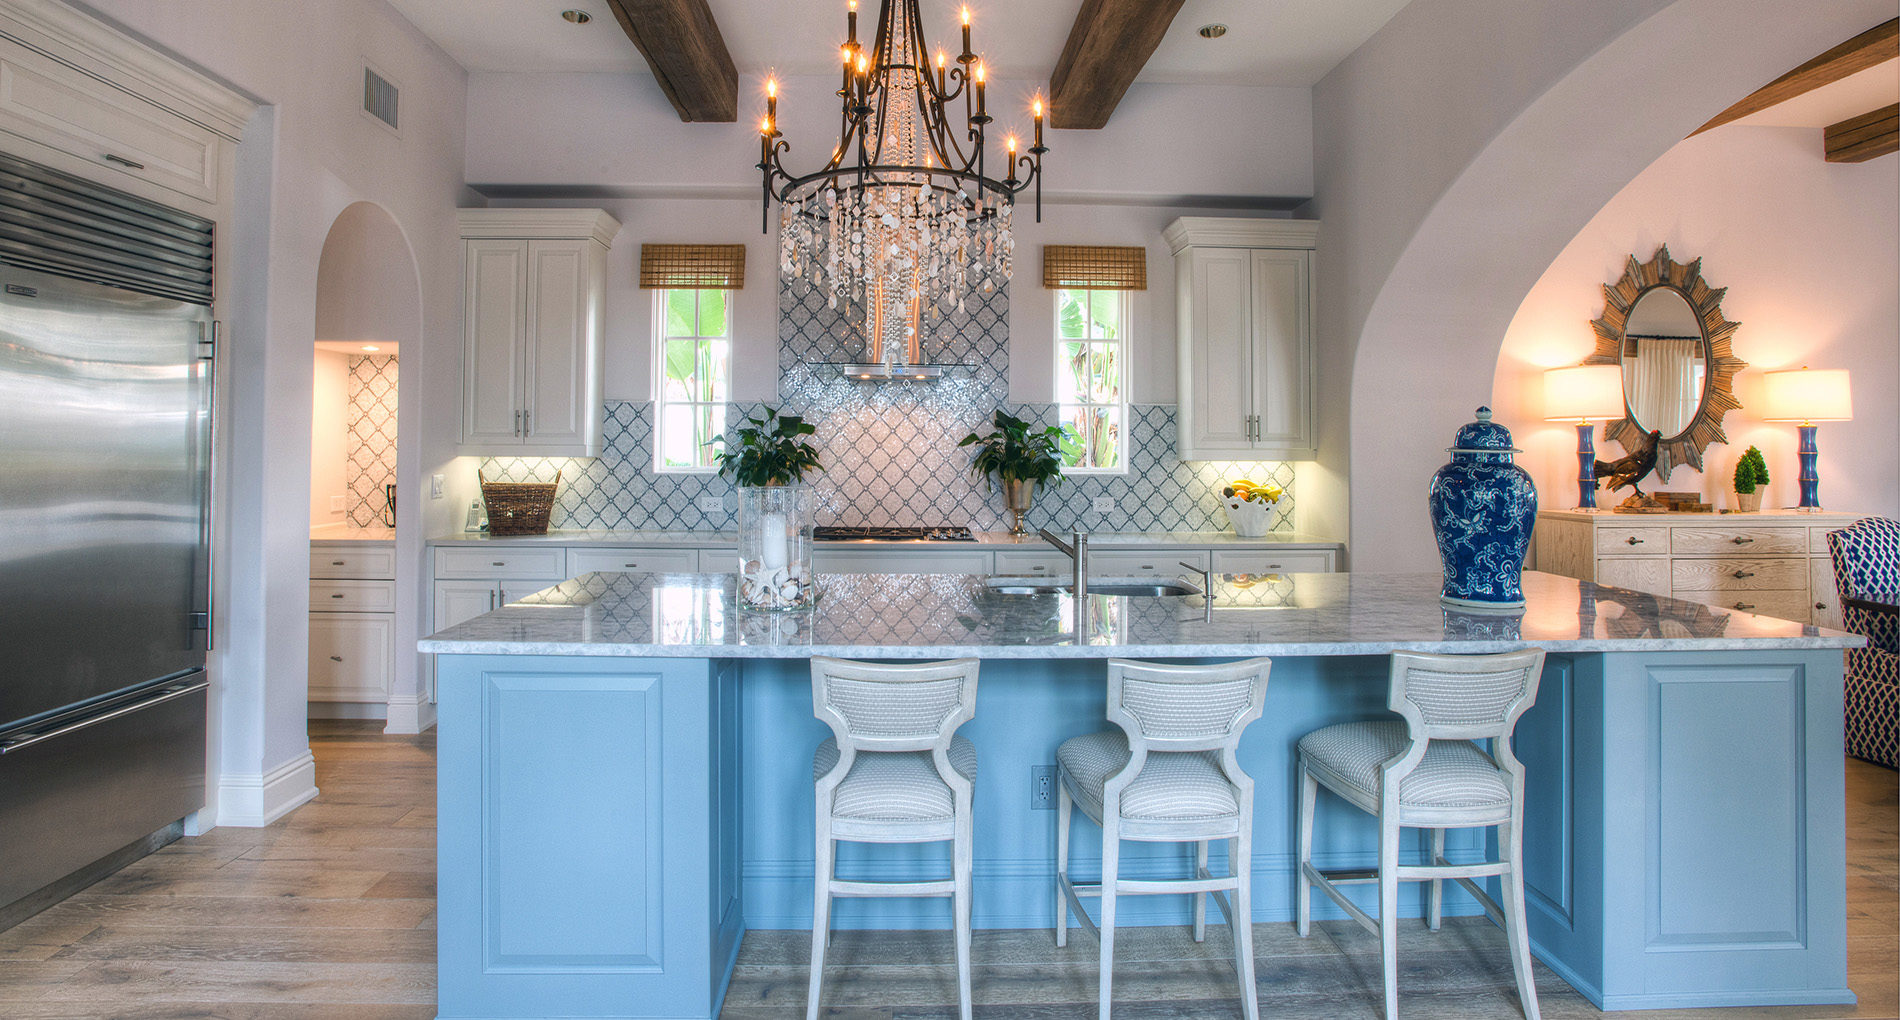 Orlando Custom Kitchen Remodeling & Design | Alair Homes Orlando